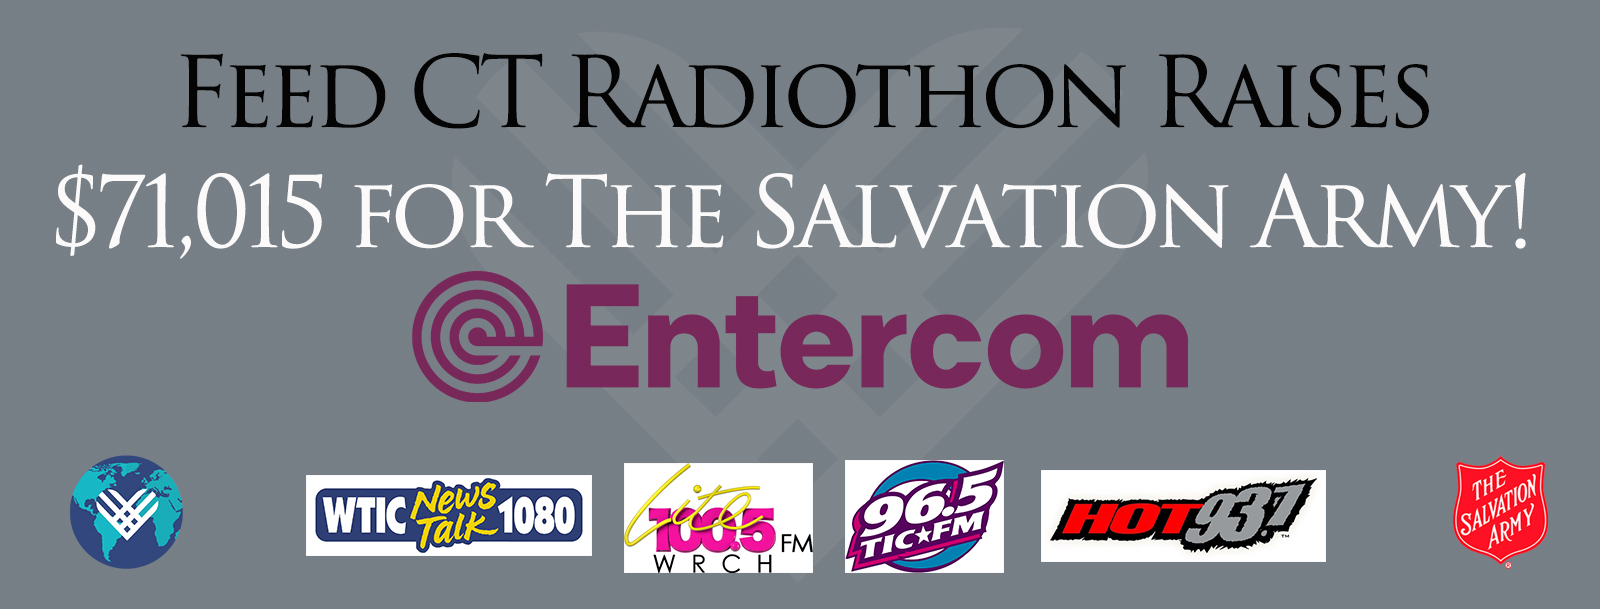 Feed CT Radiothon Thank You